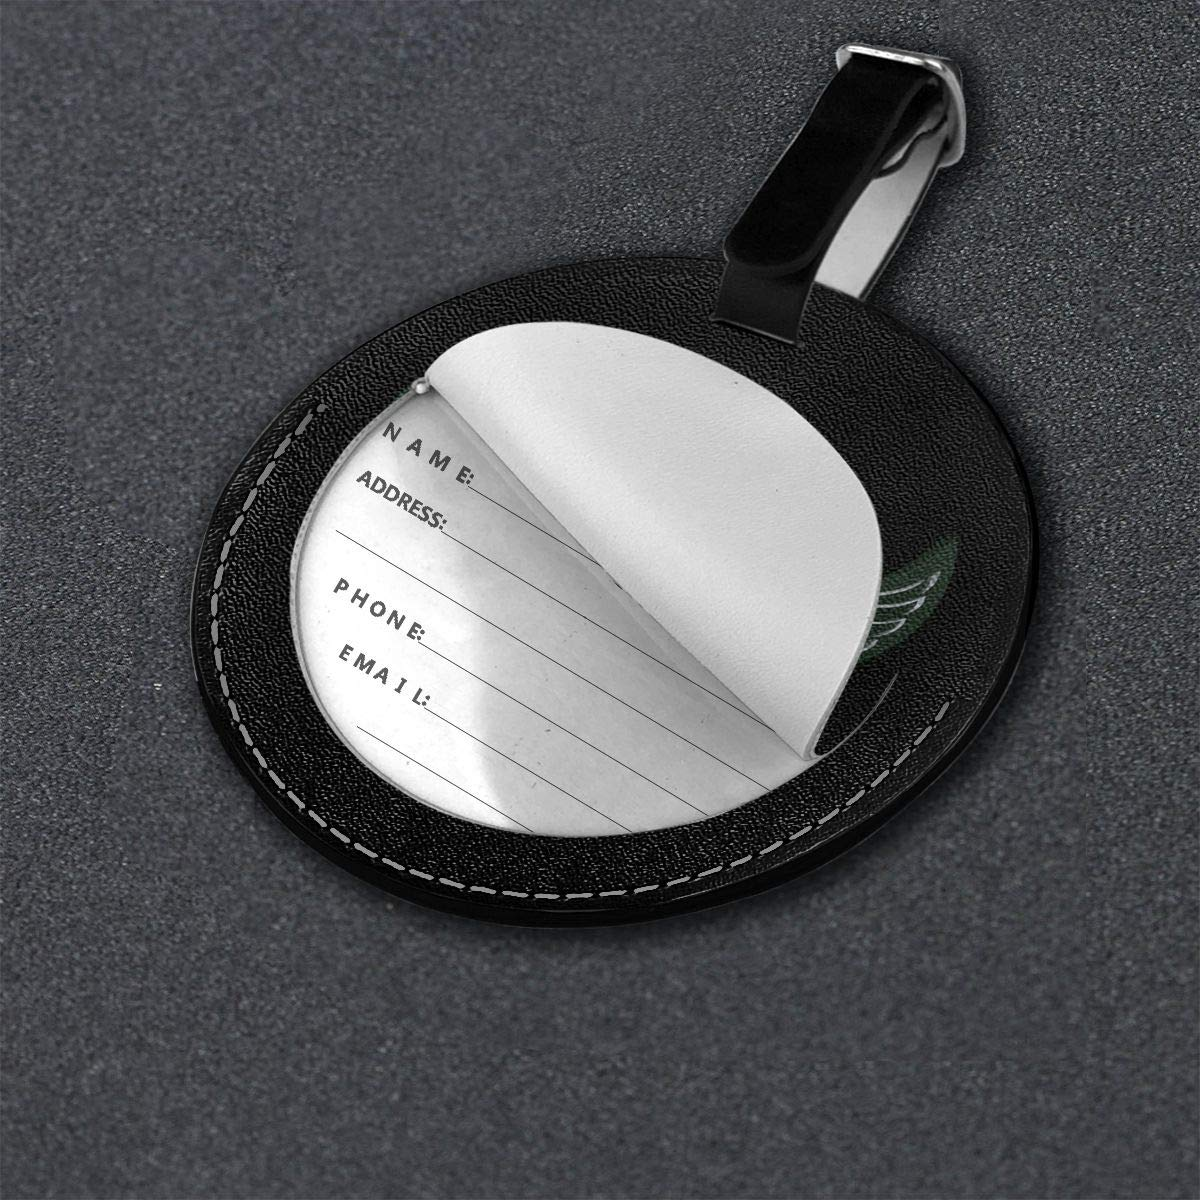 Volbeat Travel Leather Round Luggage Tags Suitcase Labels Bag